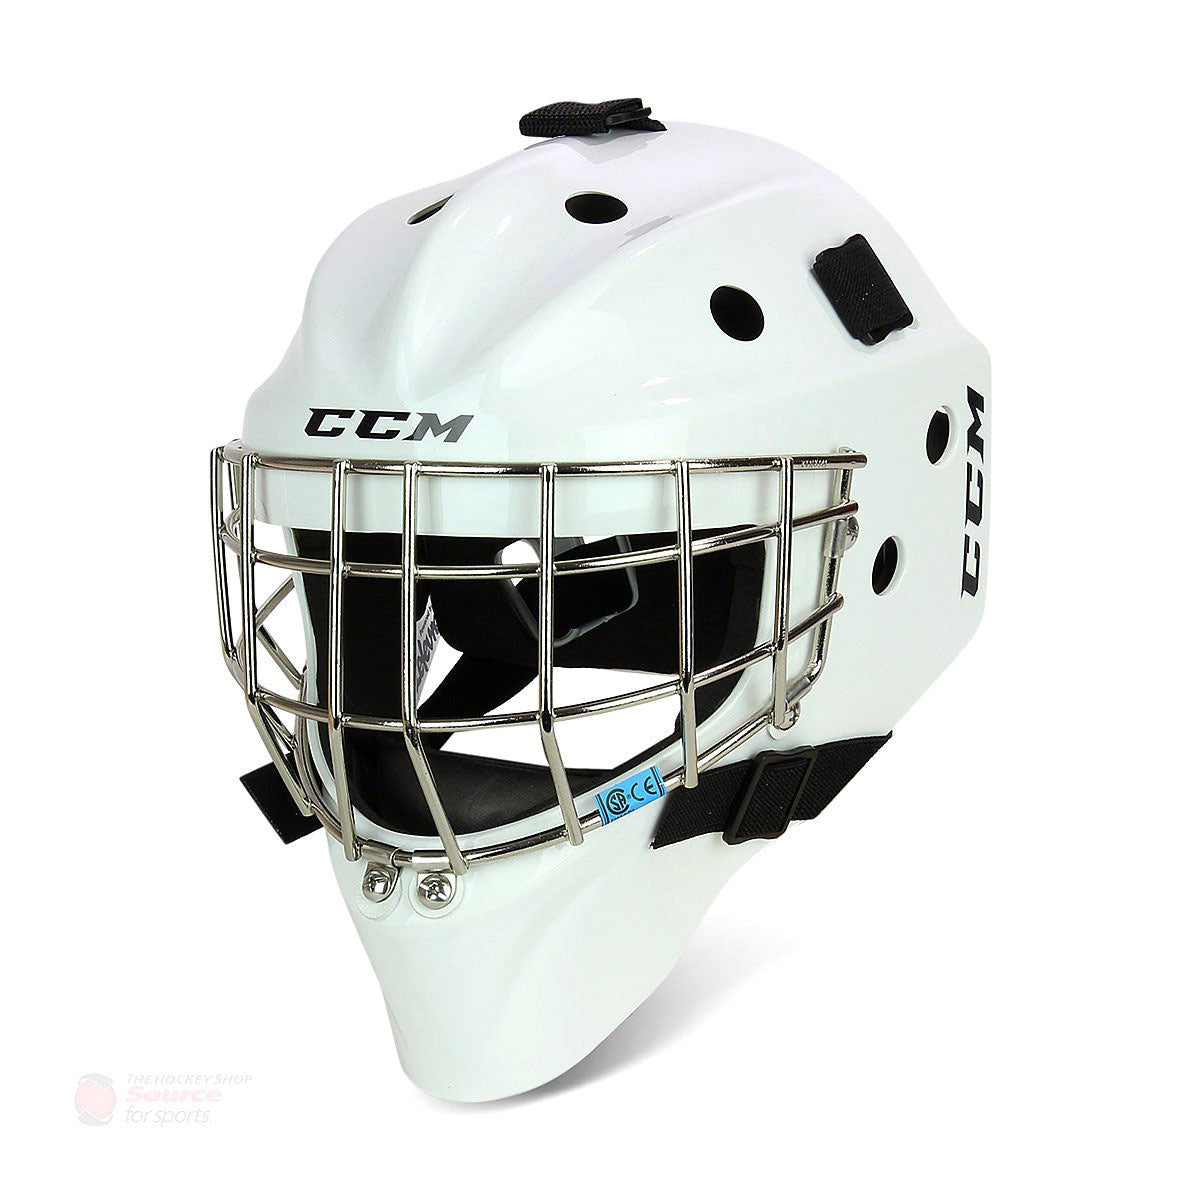 CCM L1.5 Youth Goalie Mask